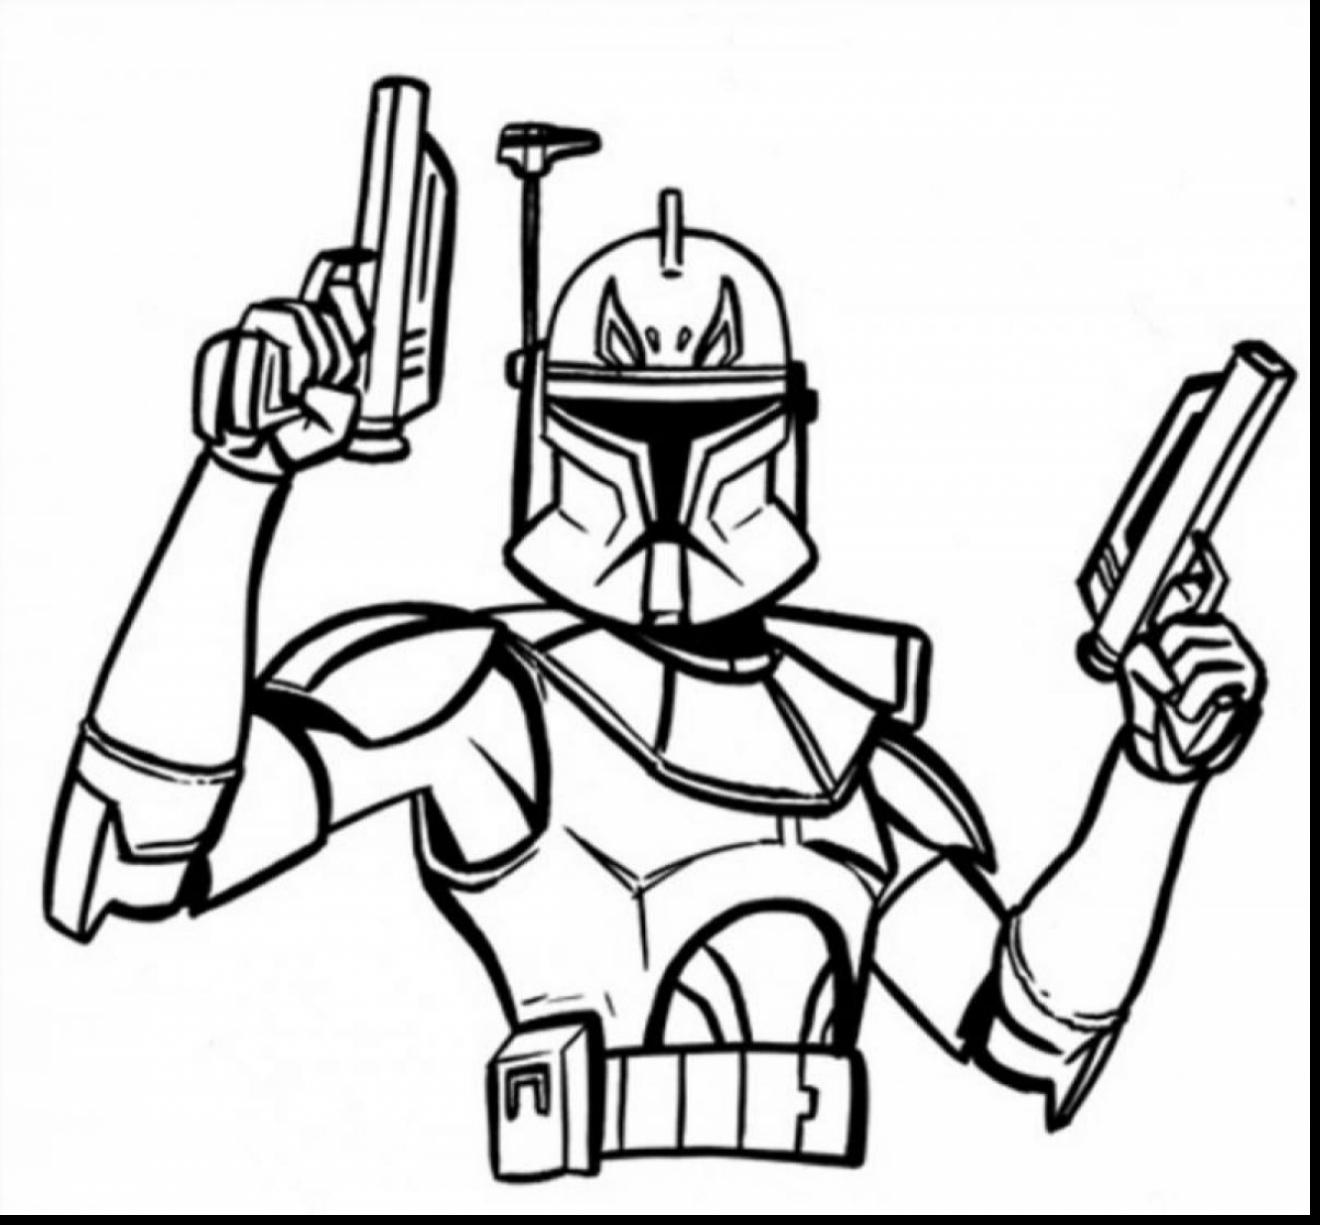 Star Wars Character Drawing at GetDrawings.com | Free for personal ...